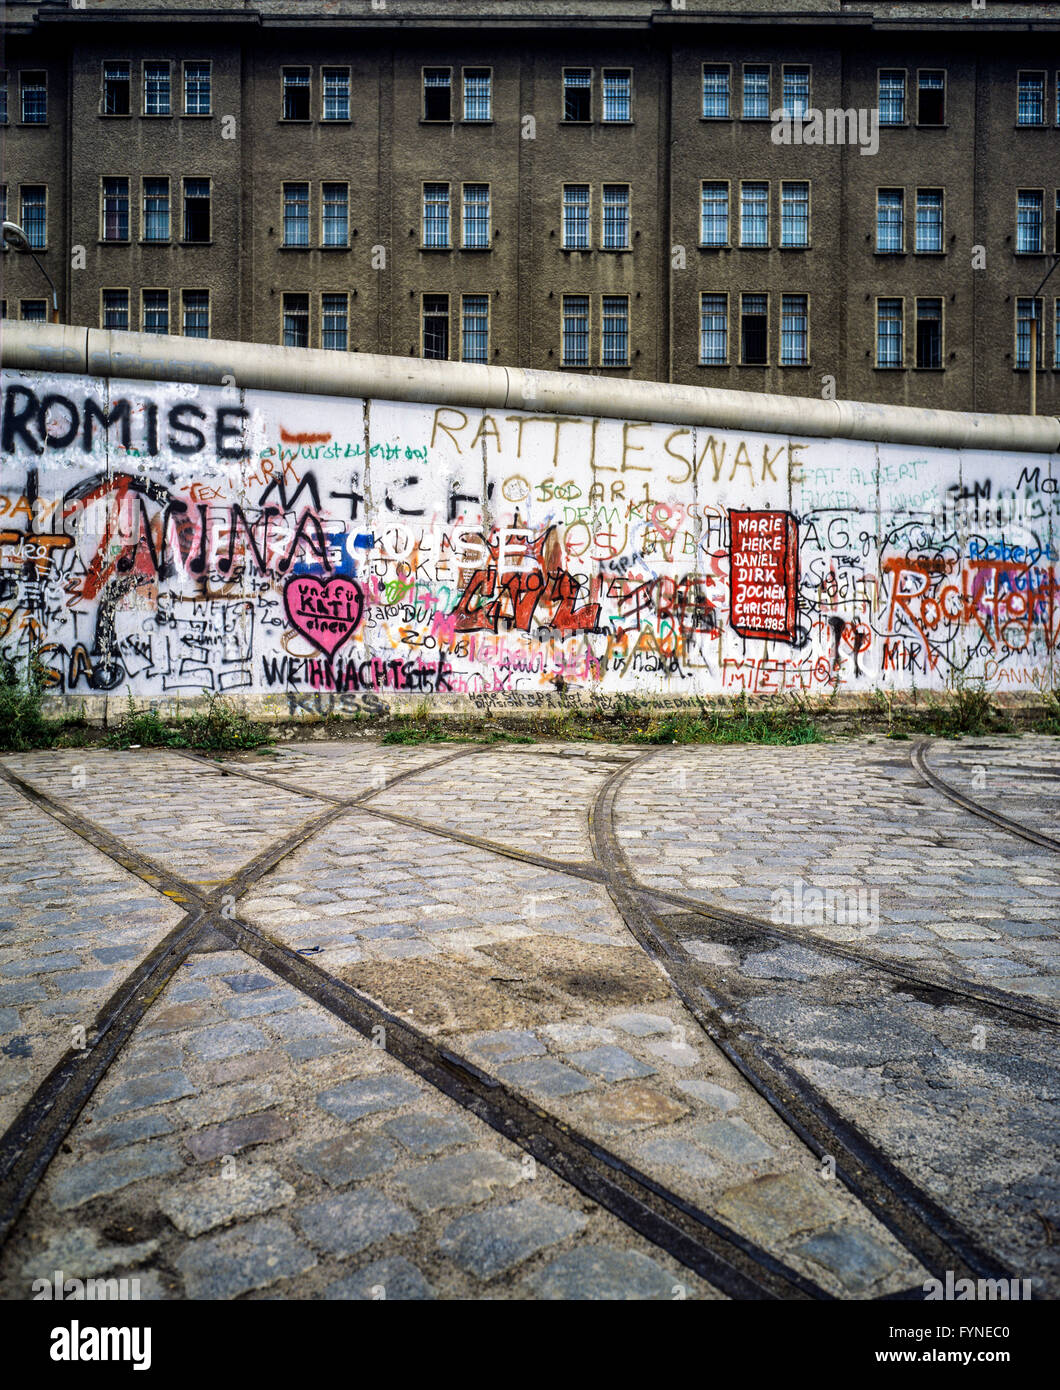 August 1986, Berlin Wall graffitis, tram track ending into wall, East Berlin building, West Berlin side, Germany, - Stock Image